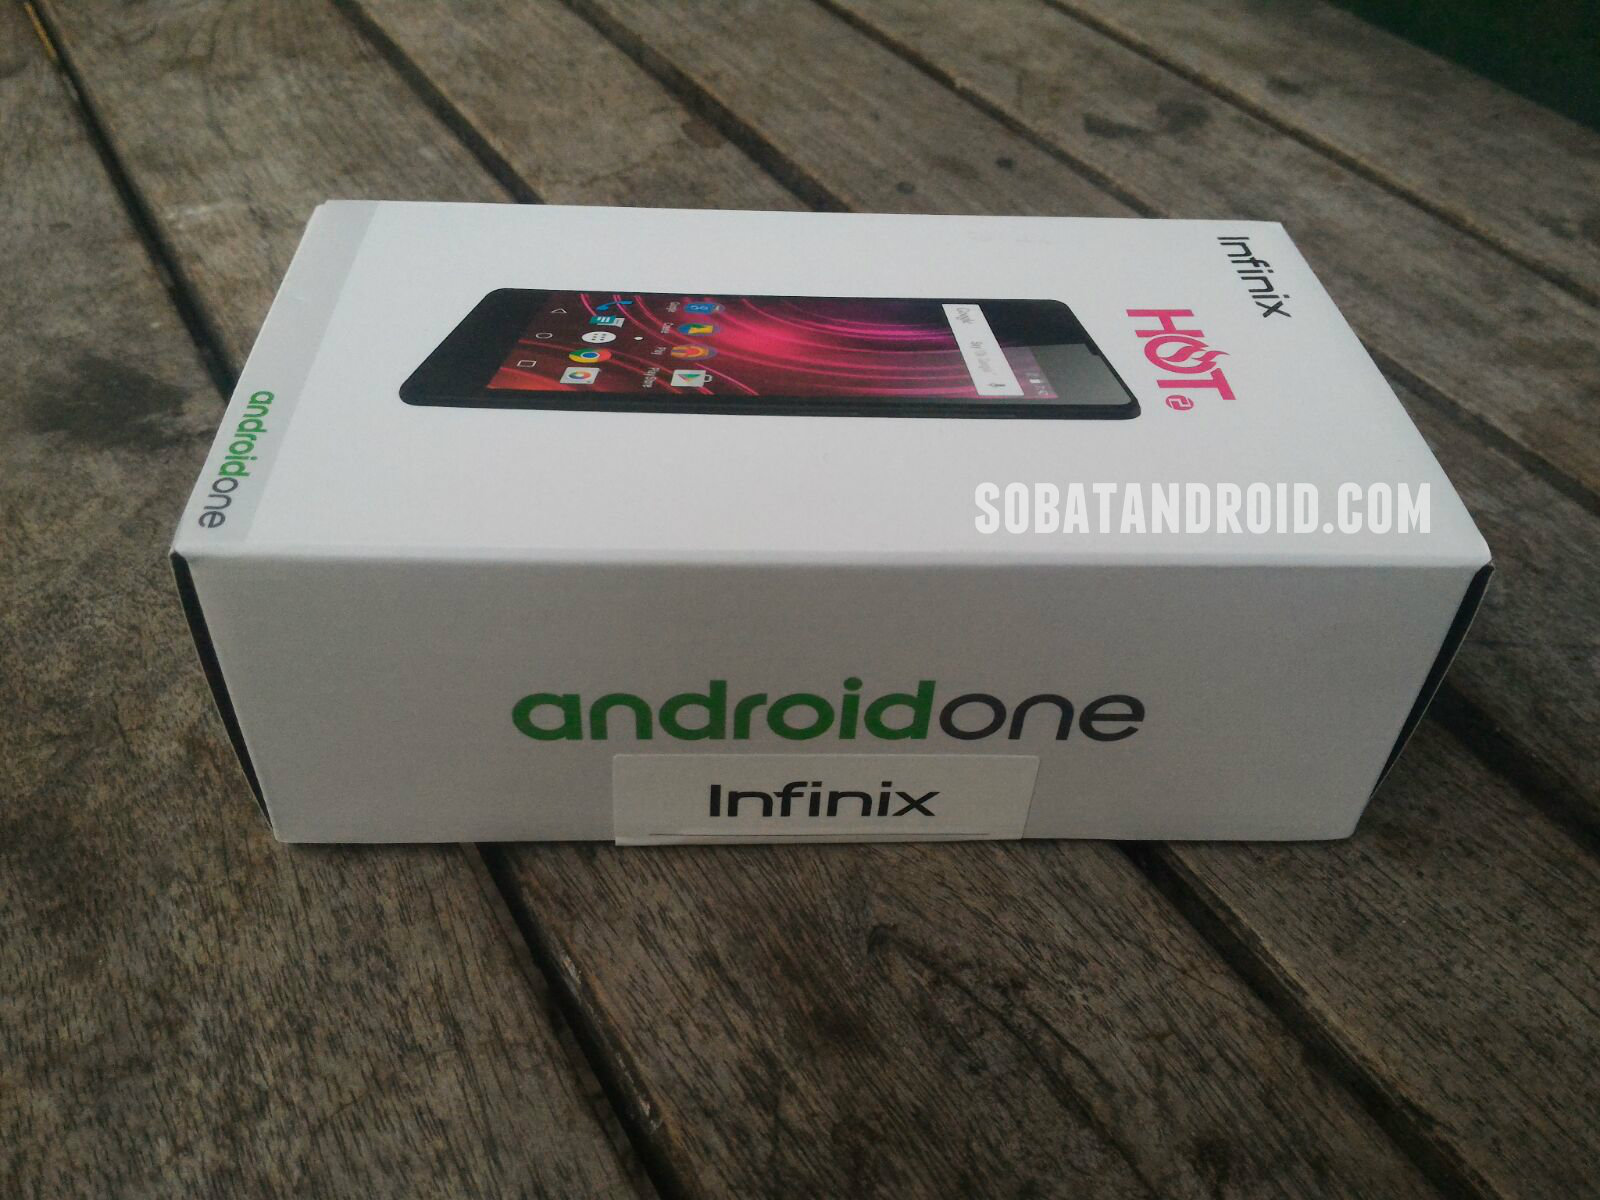 Unboxing Infinix Hot 2 Android One Lazada Sobatandroid.com